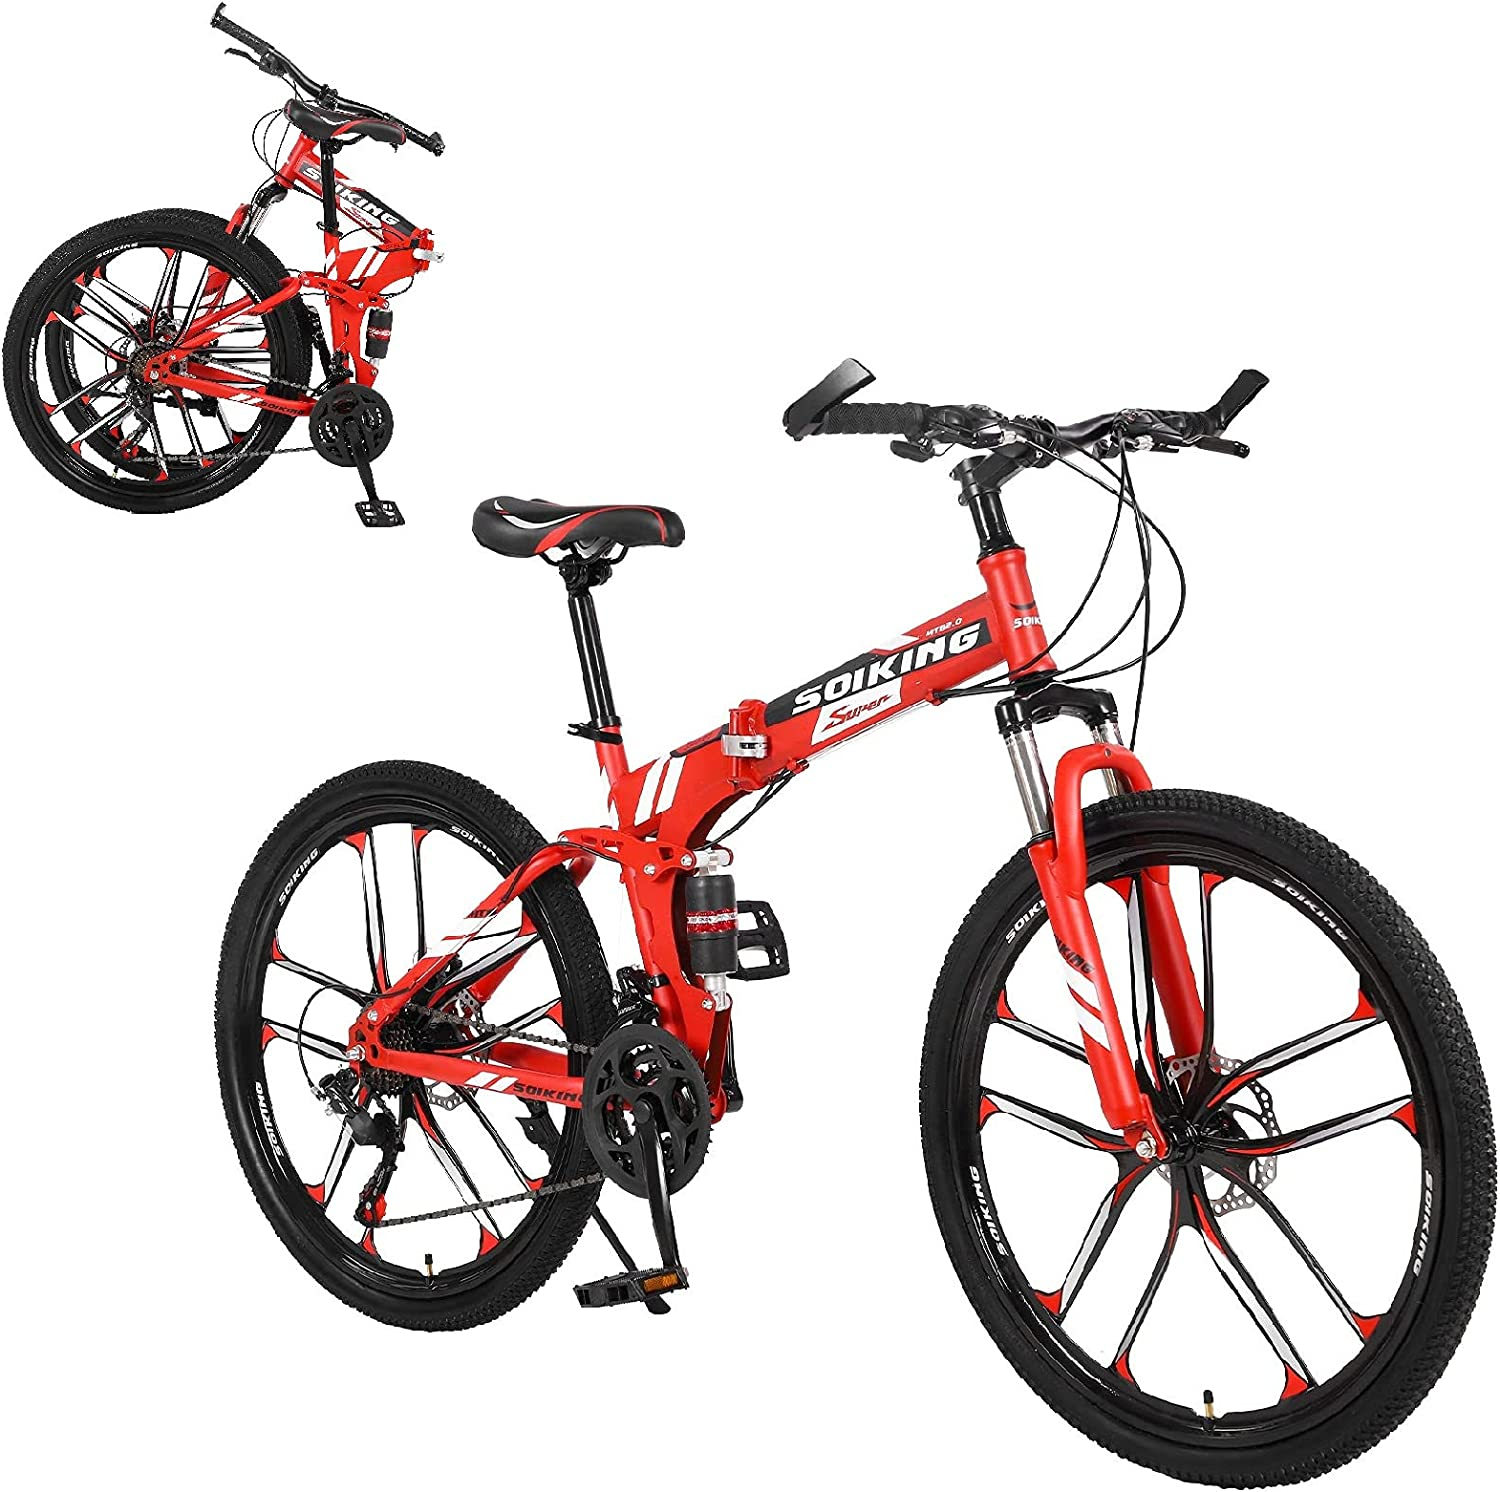 26In Folding Bicycle Mountain Bike - Speed 21 F Brakes Disc Price reduction Max 80% OFF Dual